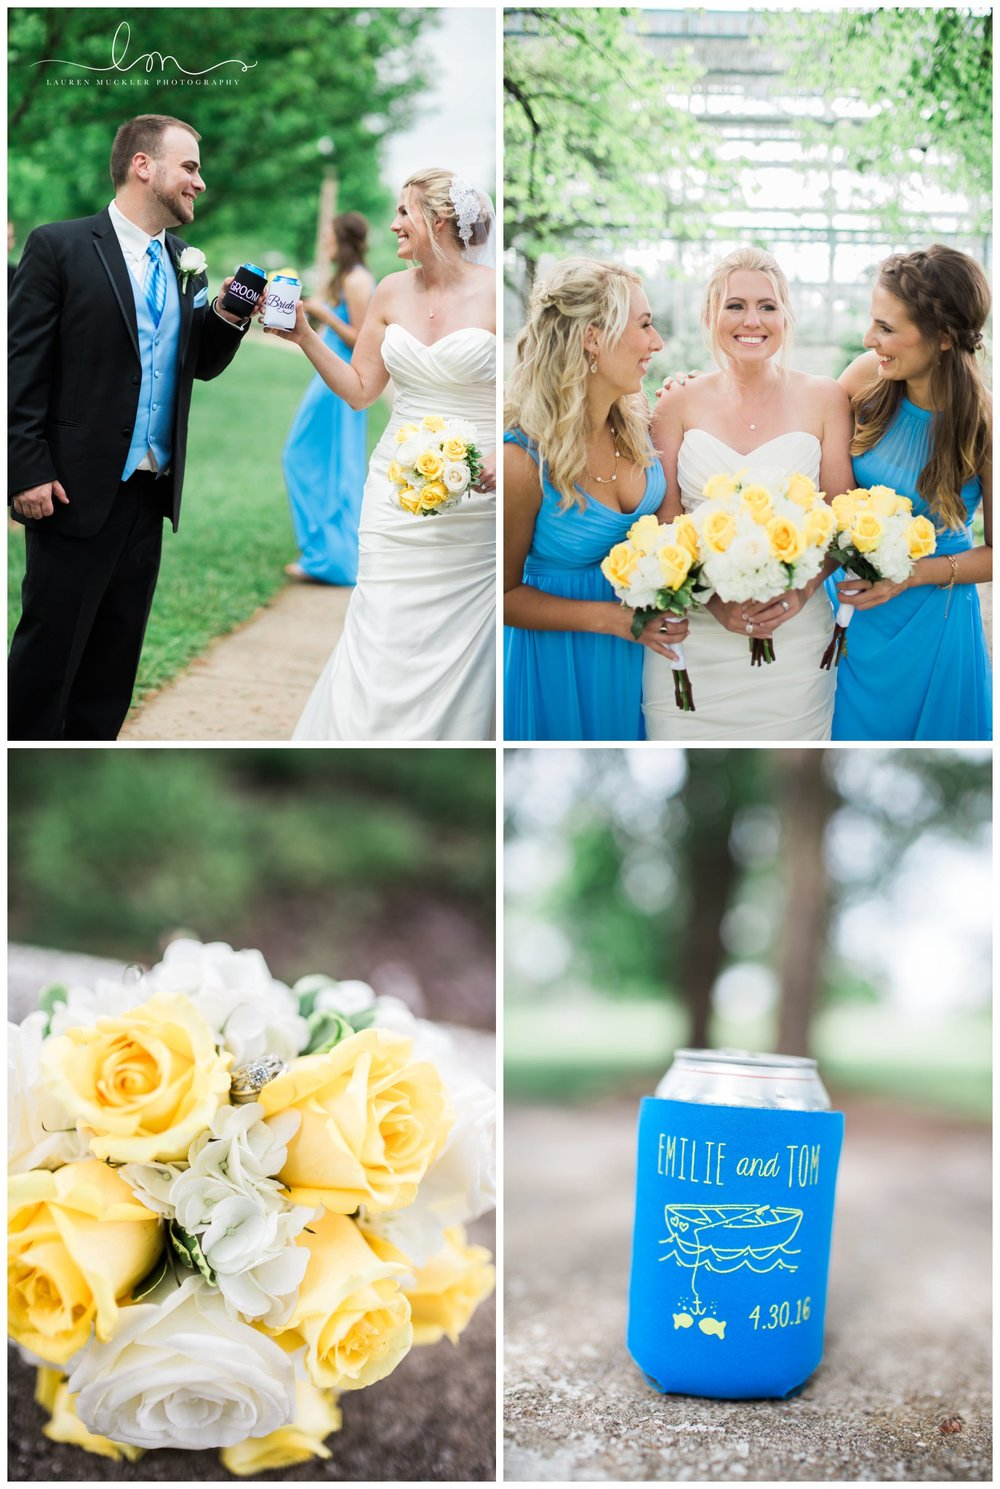 lauren muckler photography_fine art film wedding photography_st louis_photography_0201.jpg